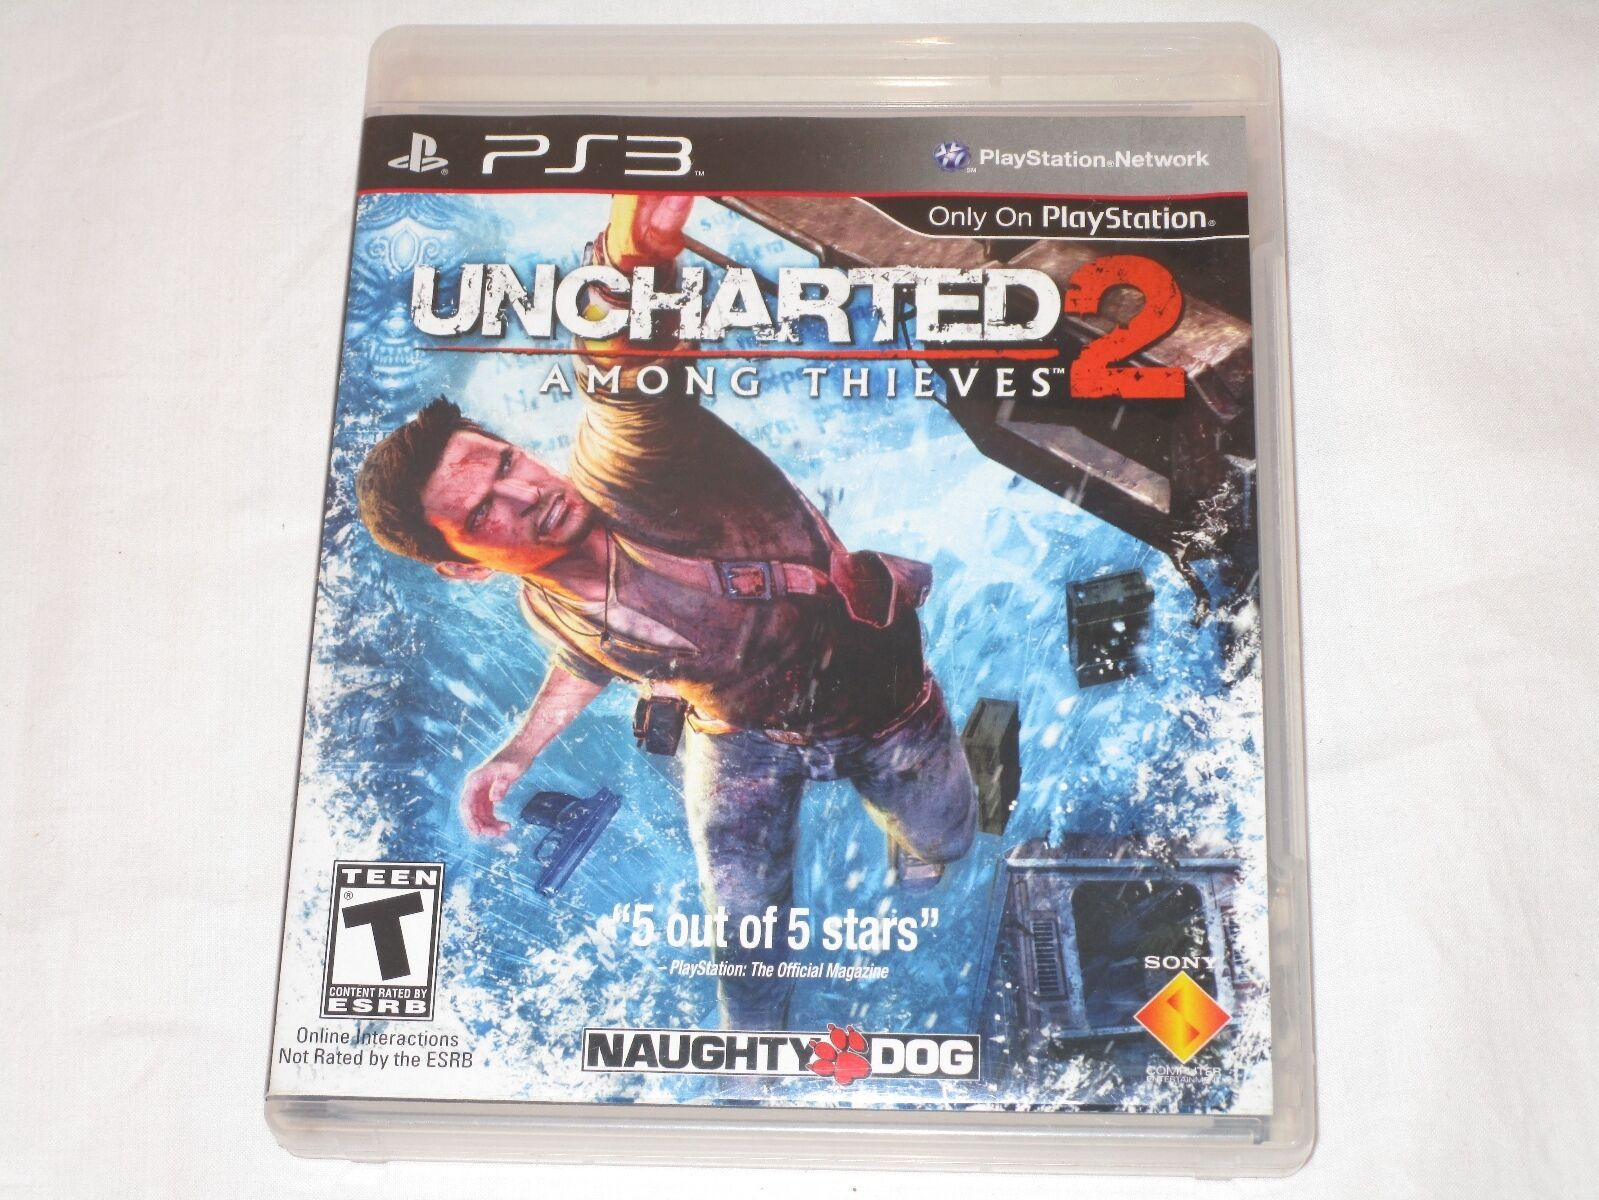 Primary image for Uncharted 2: Among Thieves (Sony Playstation 3, 2009) COMPLETE